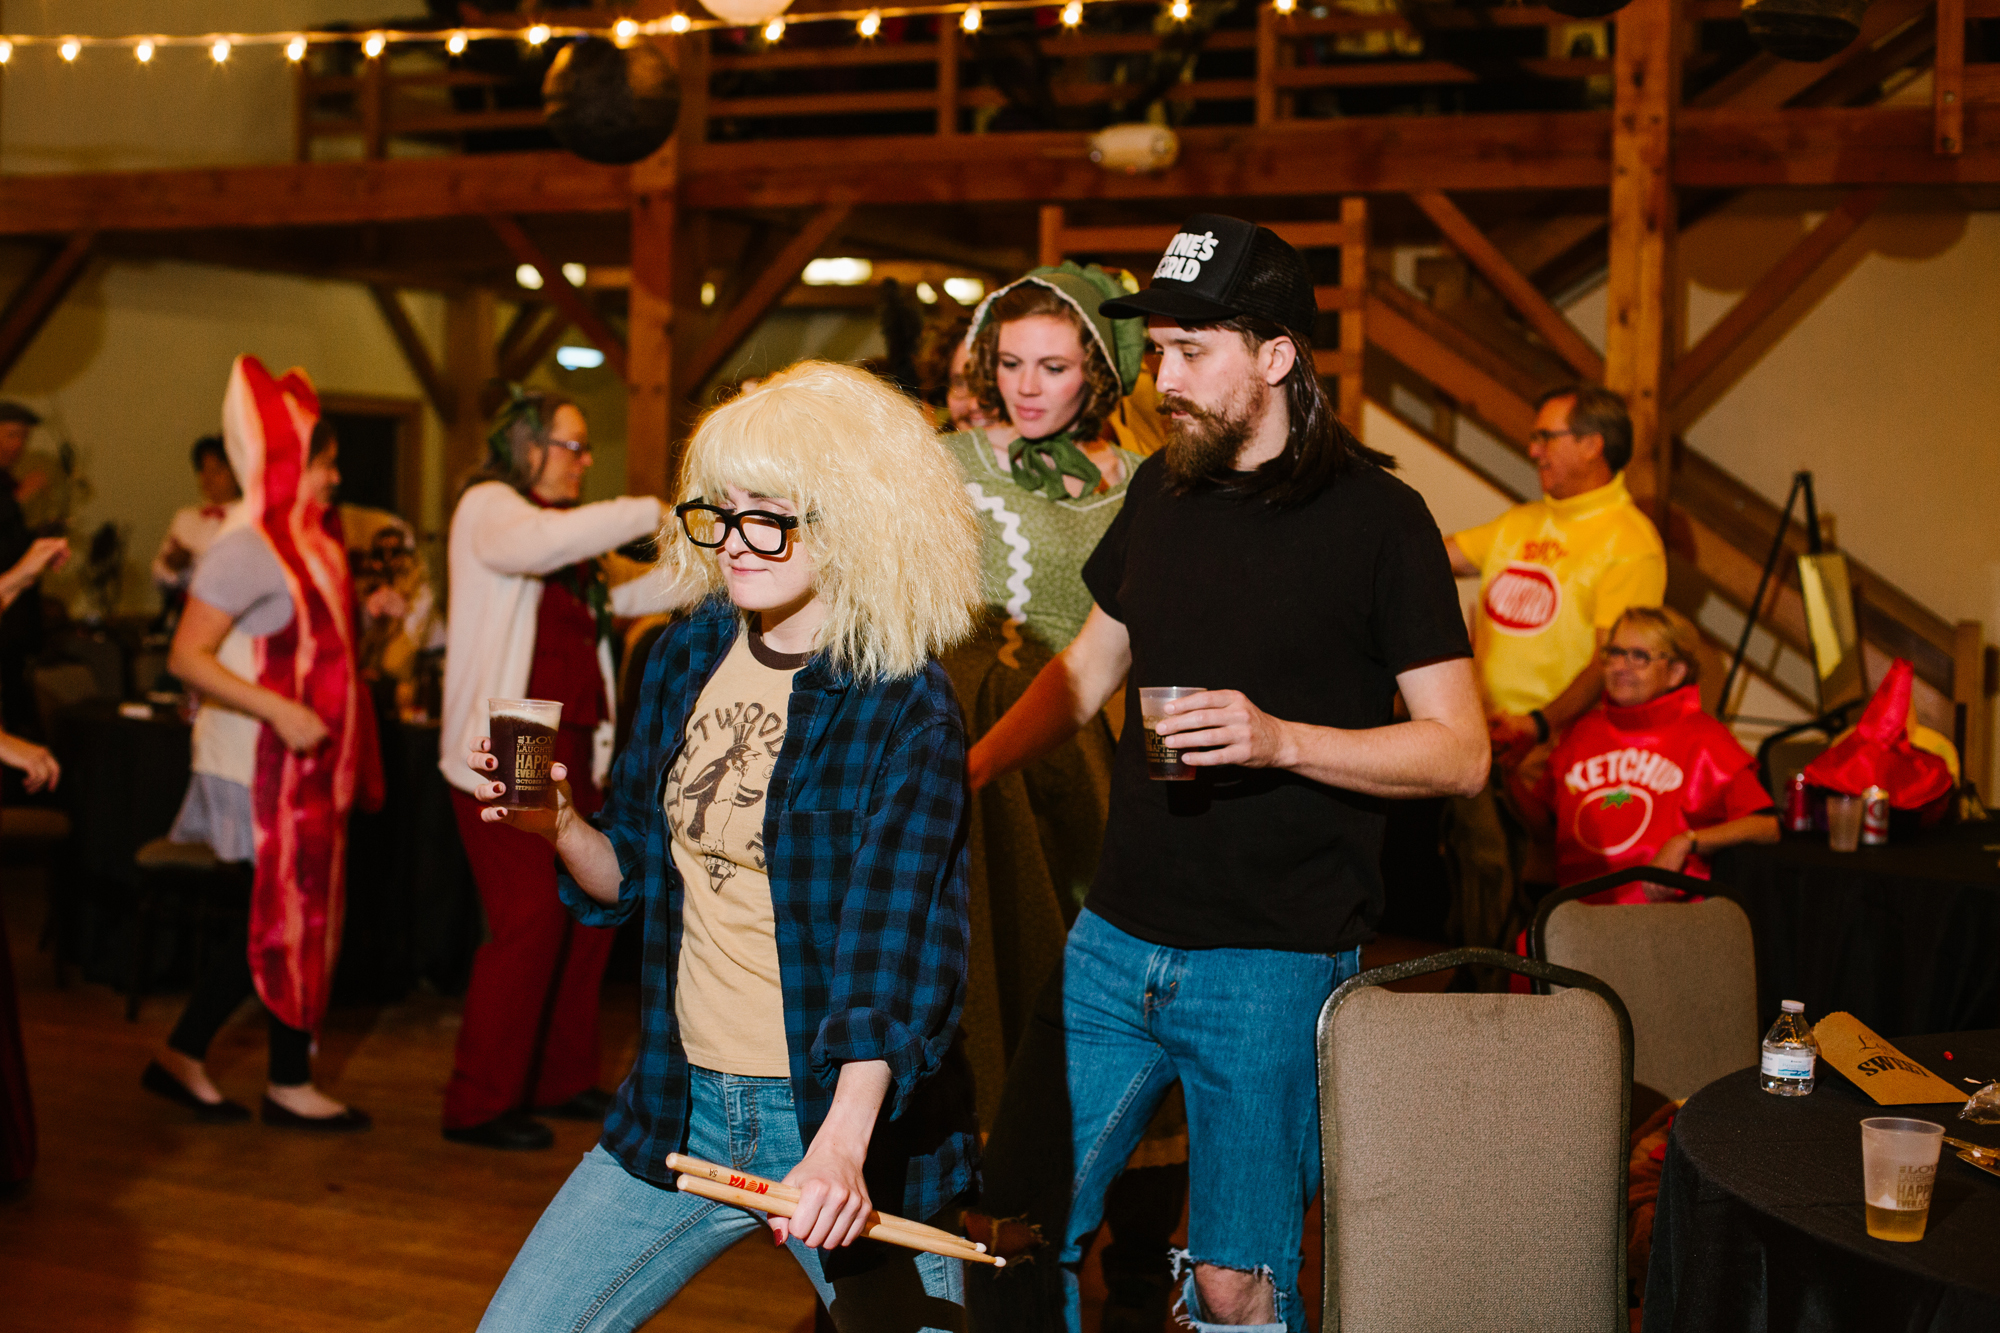 ann-arbor-michigan-halloween-themed-wedding-dancing-photos (8).jpg